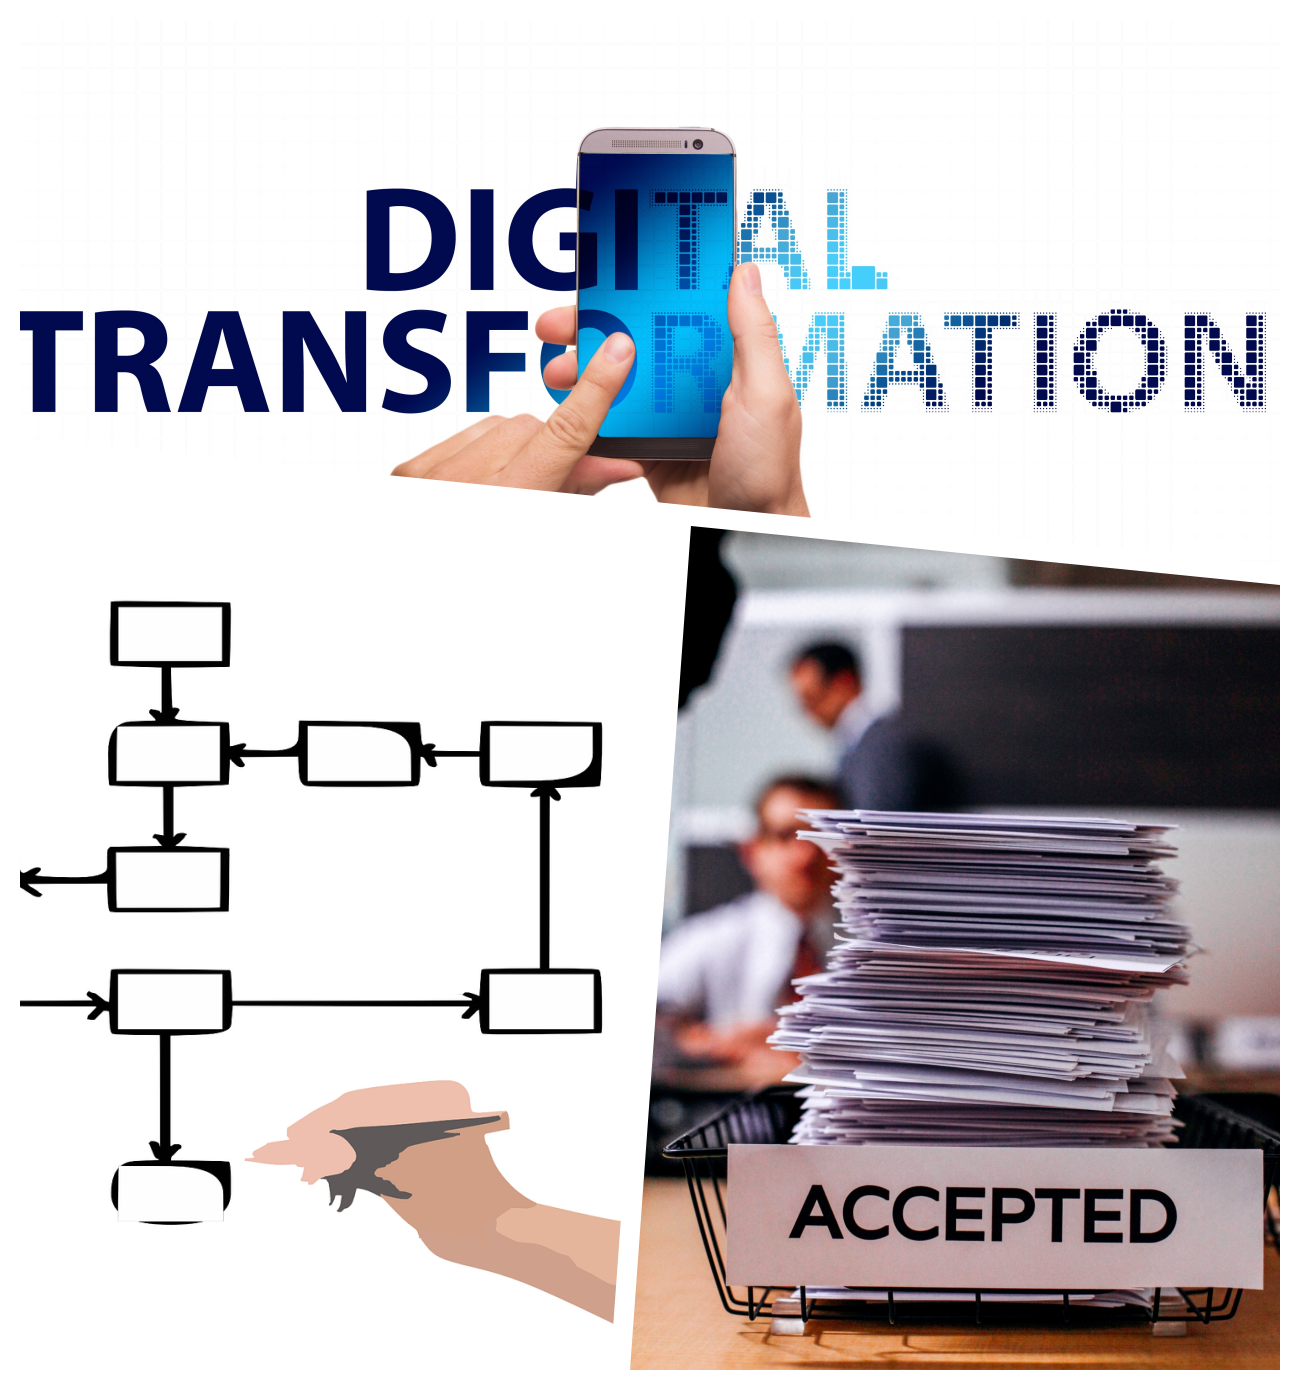 ZEST I/O Digital Transformation Road Map Remove Paperwork Digitise Improve Streamline